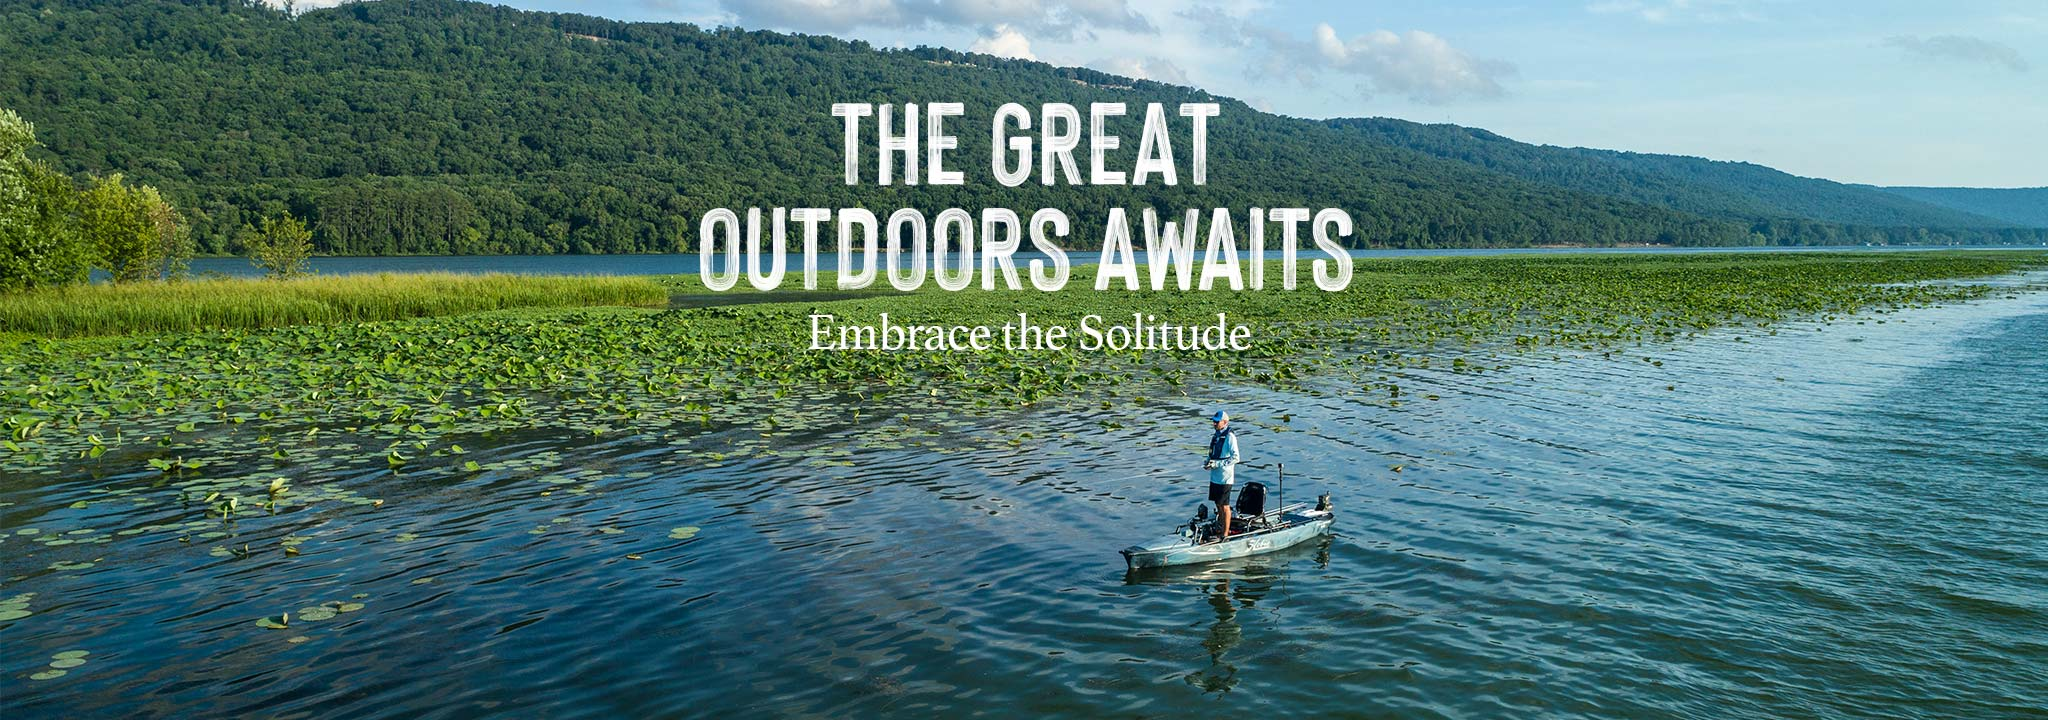 The Great Outdoors Awaits